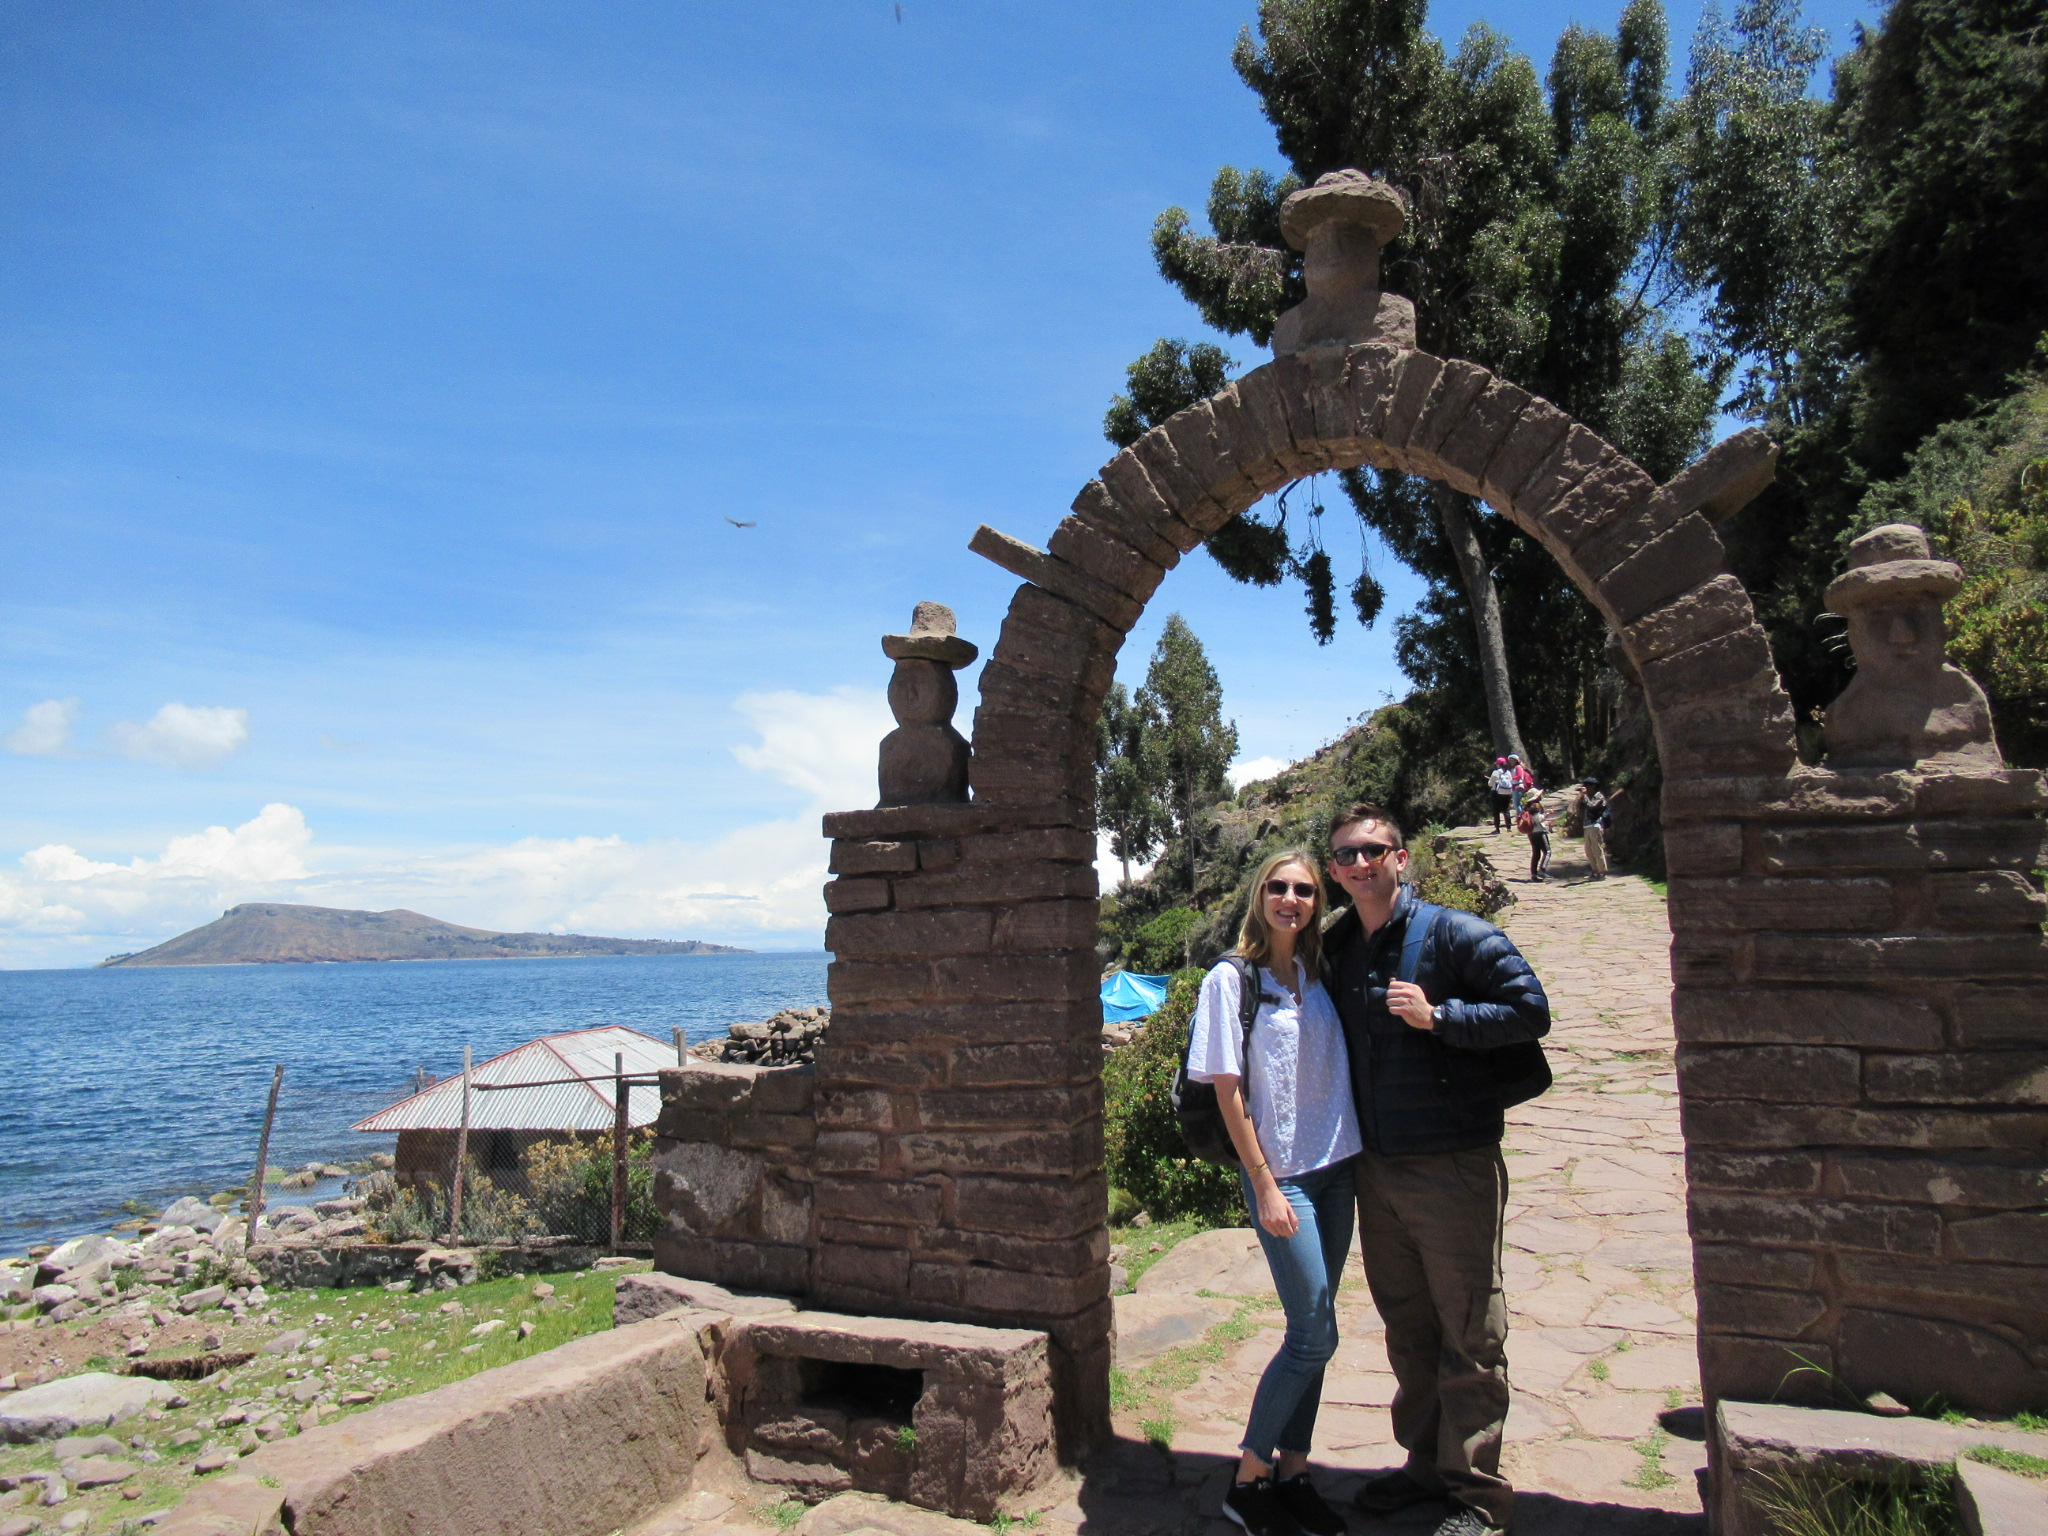 One of the many picturesque arches of Taquile.